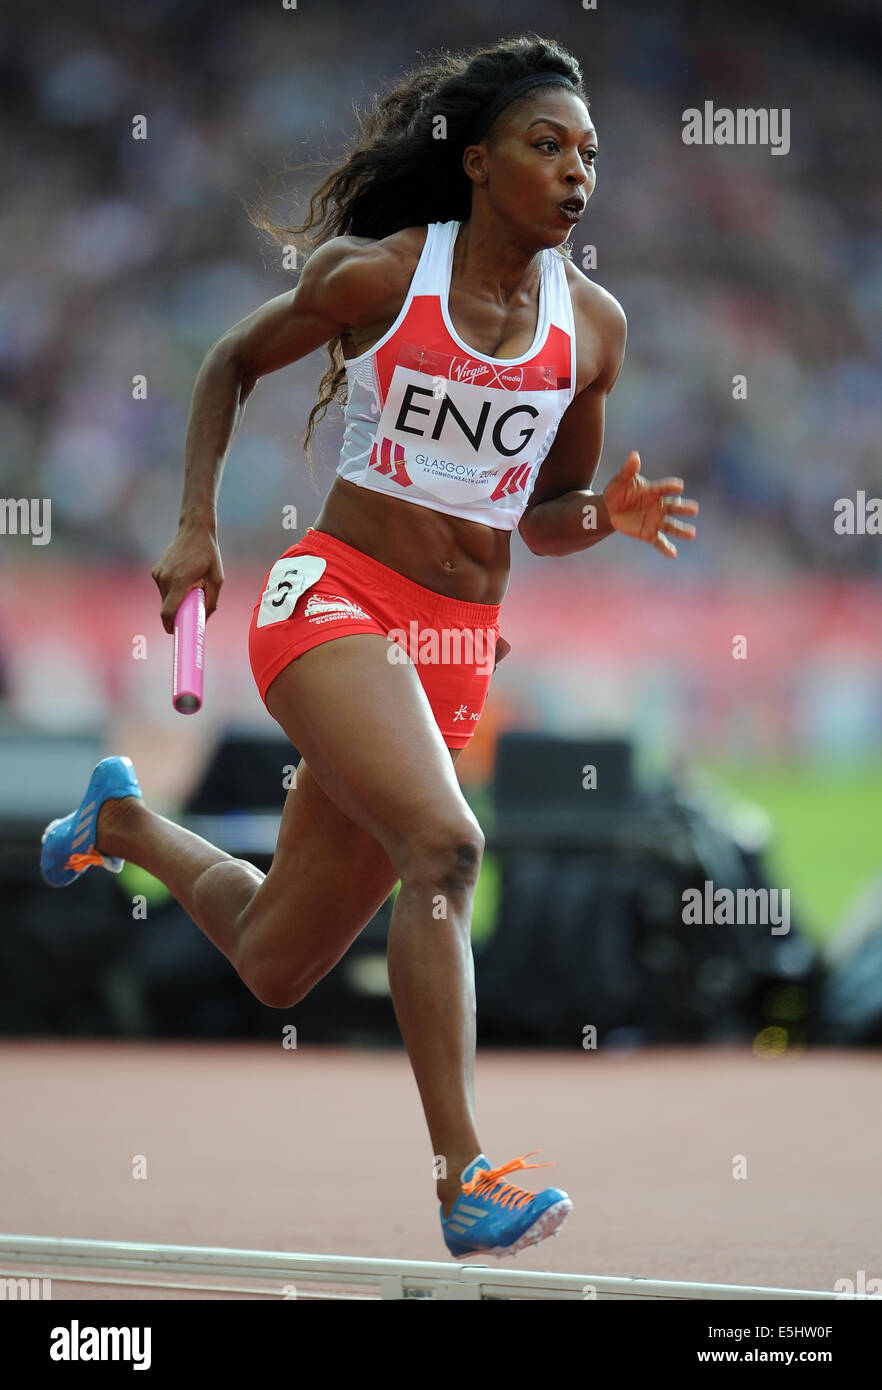 MARGARET ADEOYE WOMAN'S 4X400M RELAY HAMPDEN PARK GLASGOW SCOTLAND 01 August 2014 - Stock Image